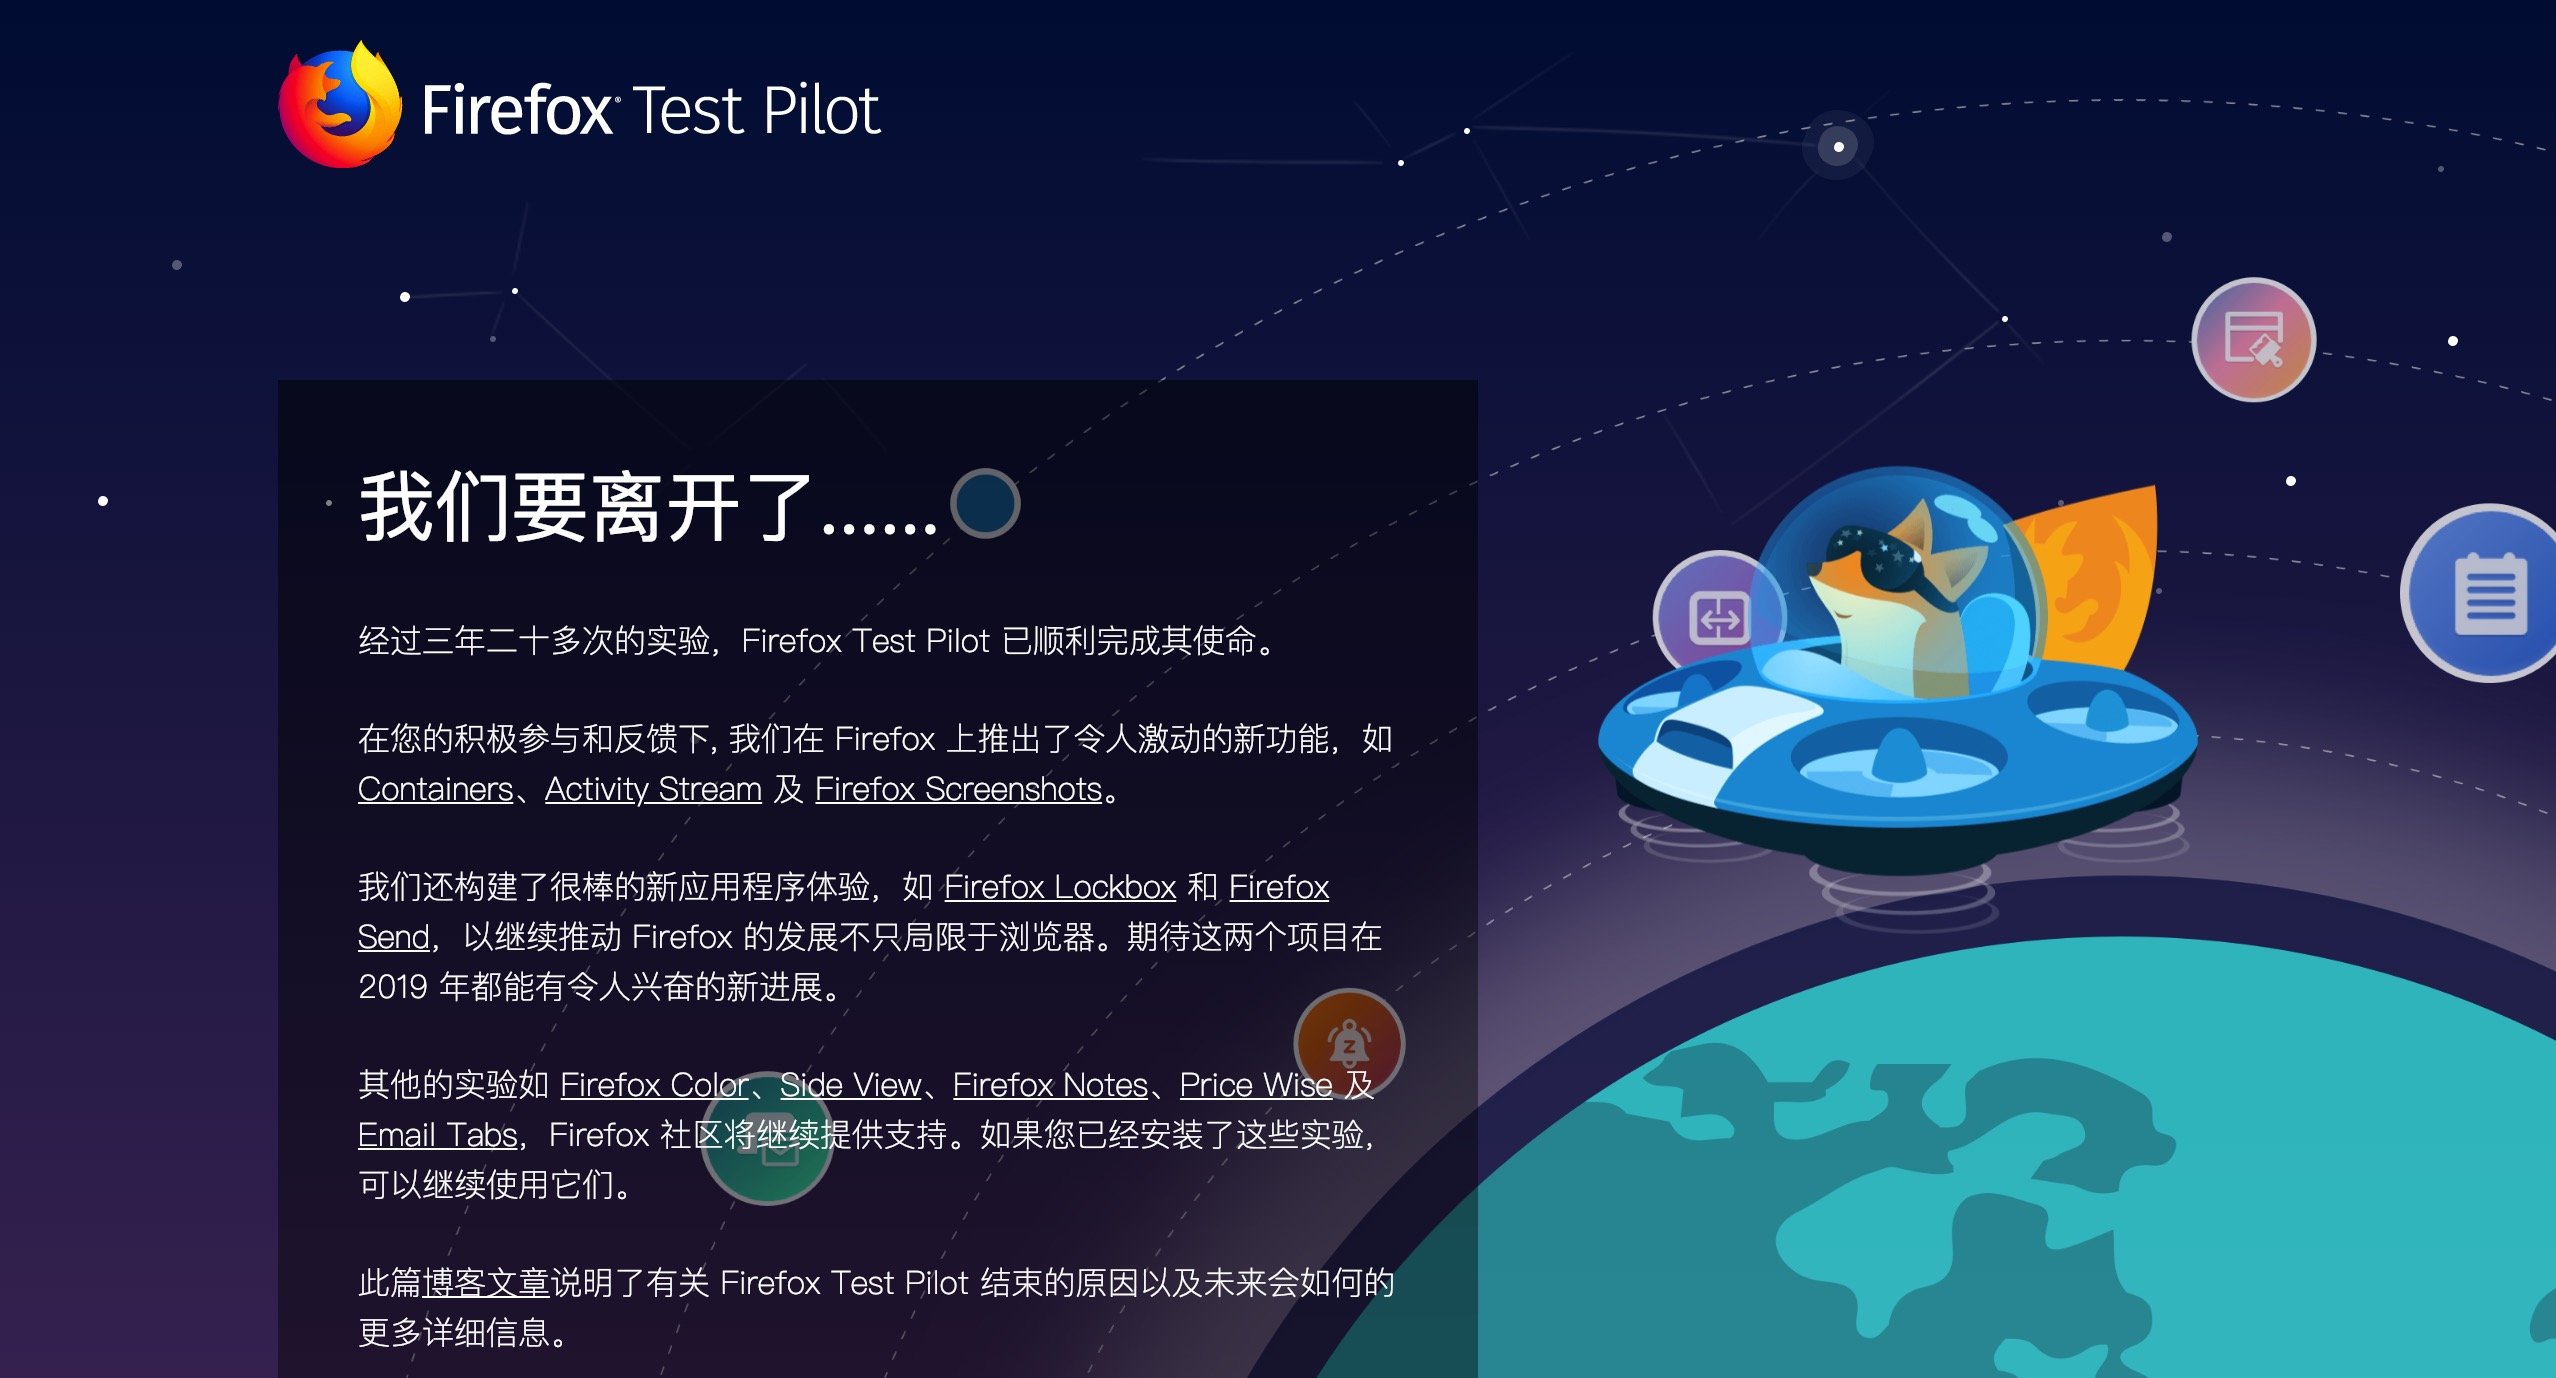 Firefox Test Pilot is officially closed_China IT News